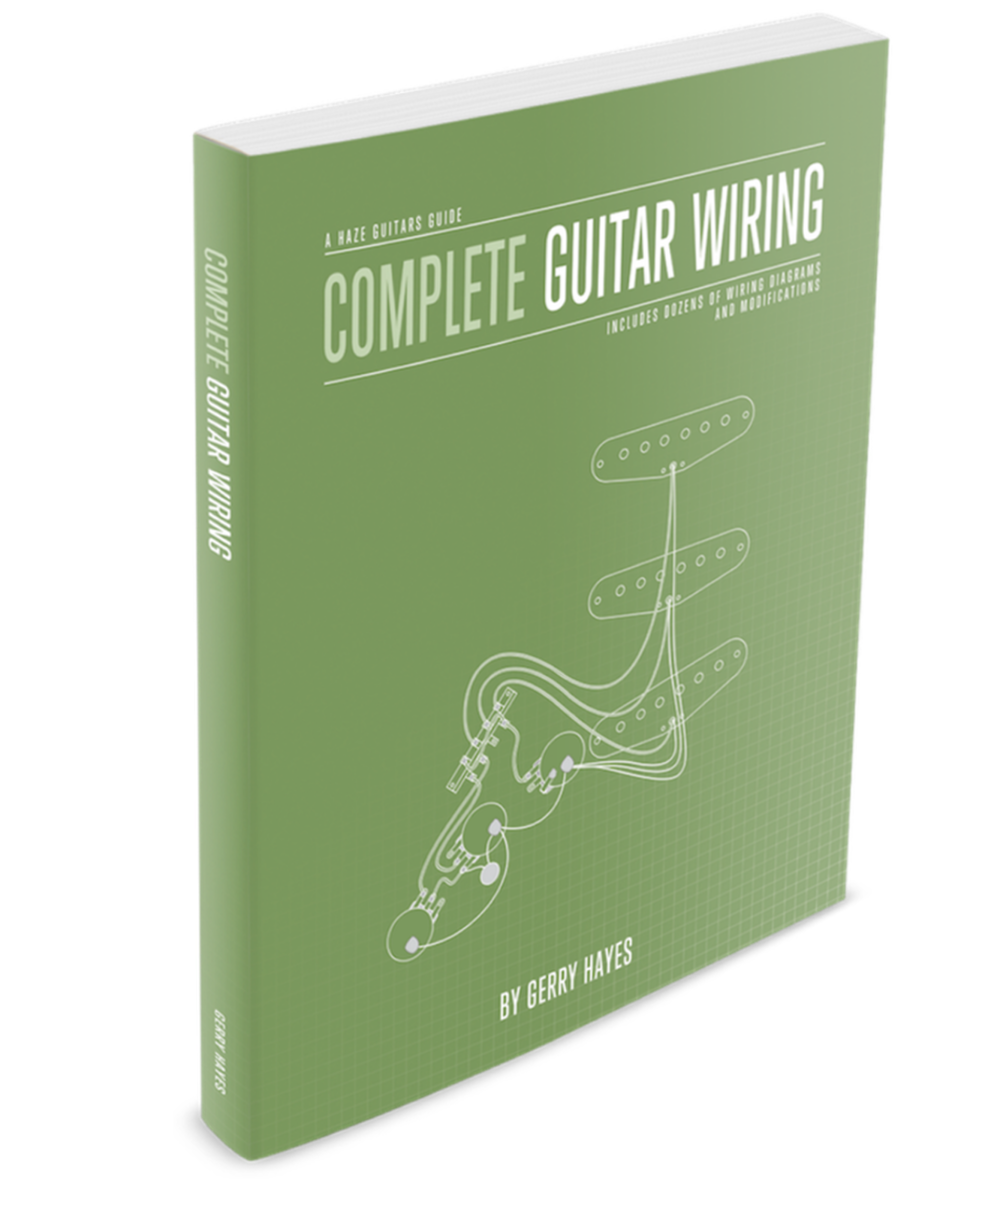 Haze Guitars Repair Vaicom O View Topic Help Gibson Lespaul Standard Pickup Wiring Available For Free Download Learn More About Truss Rods Made Easy